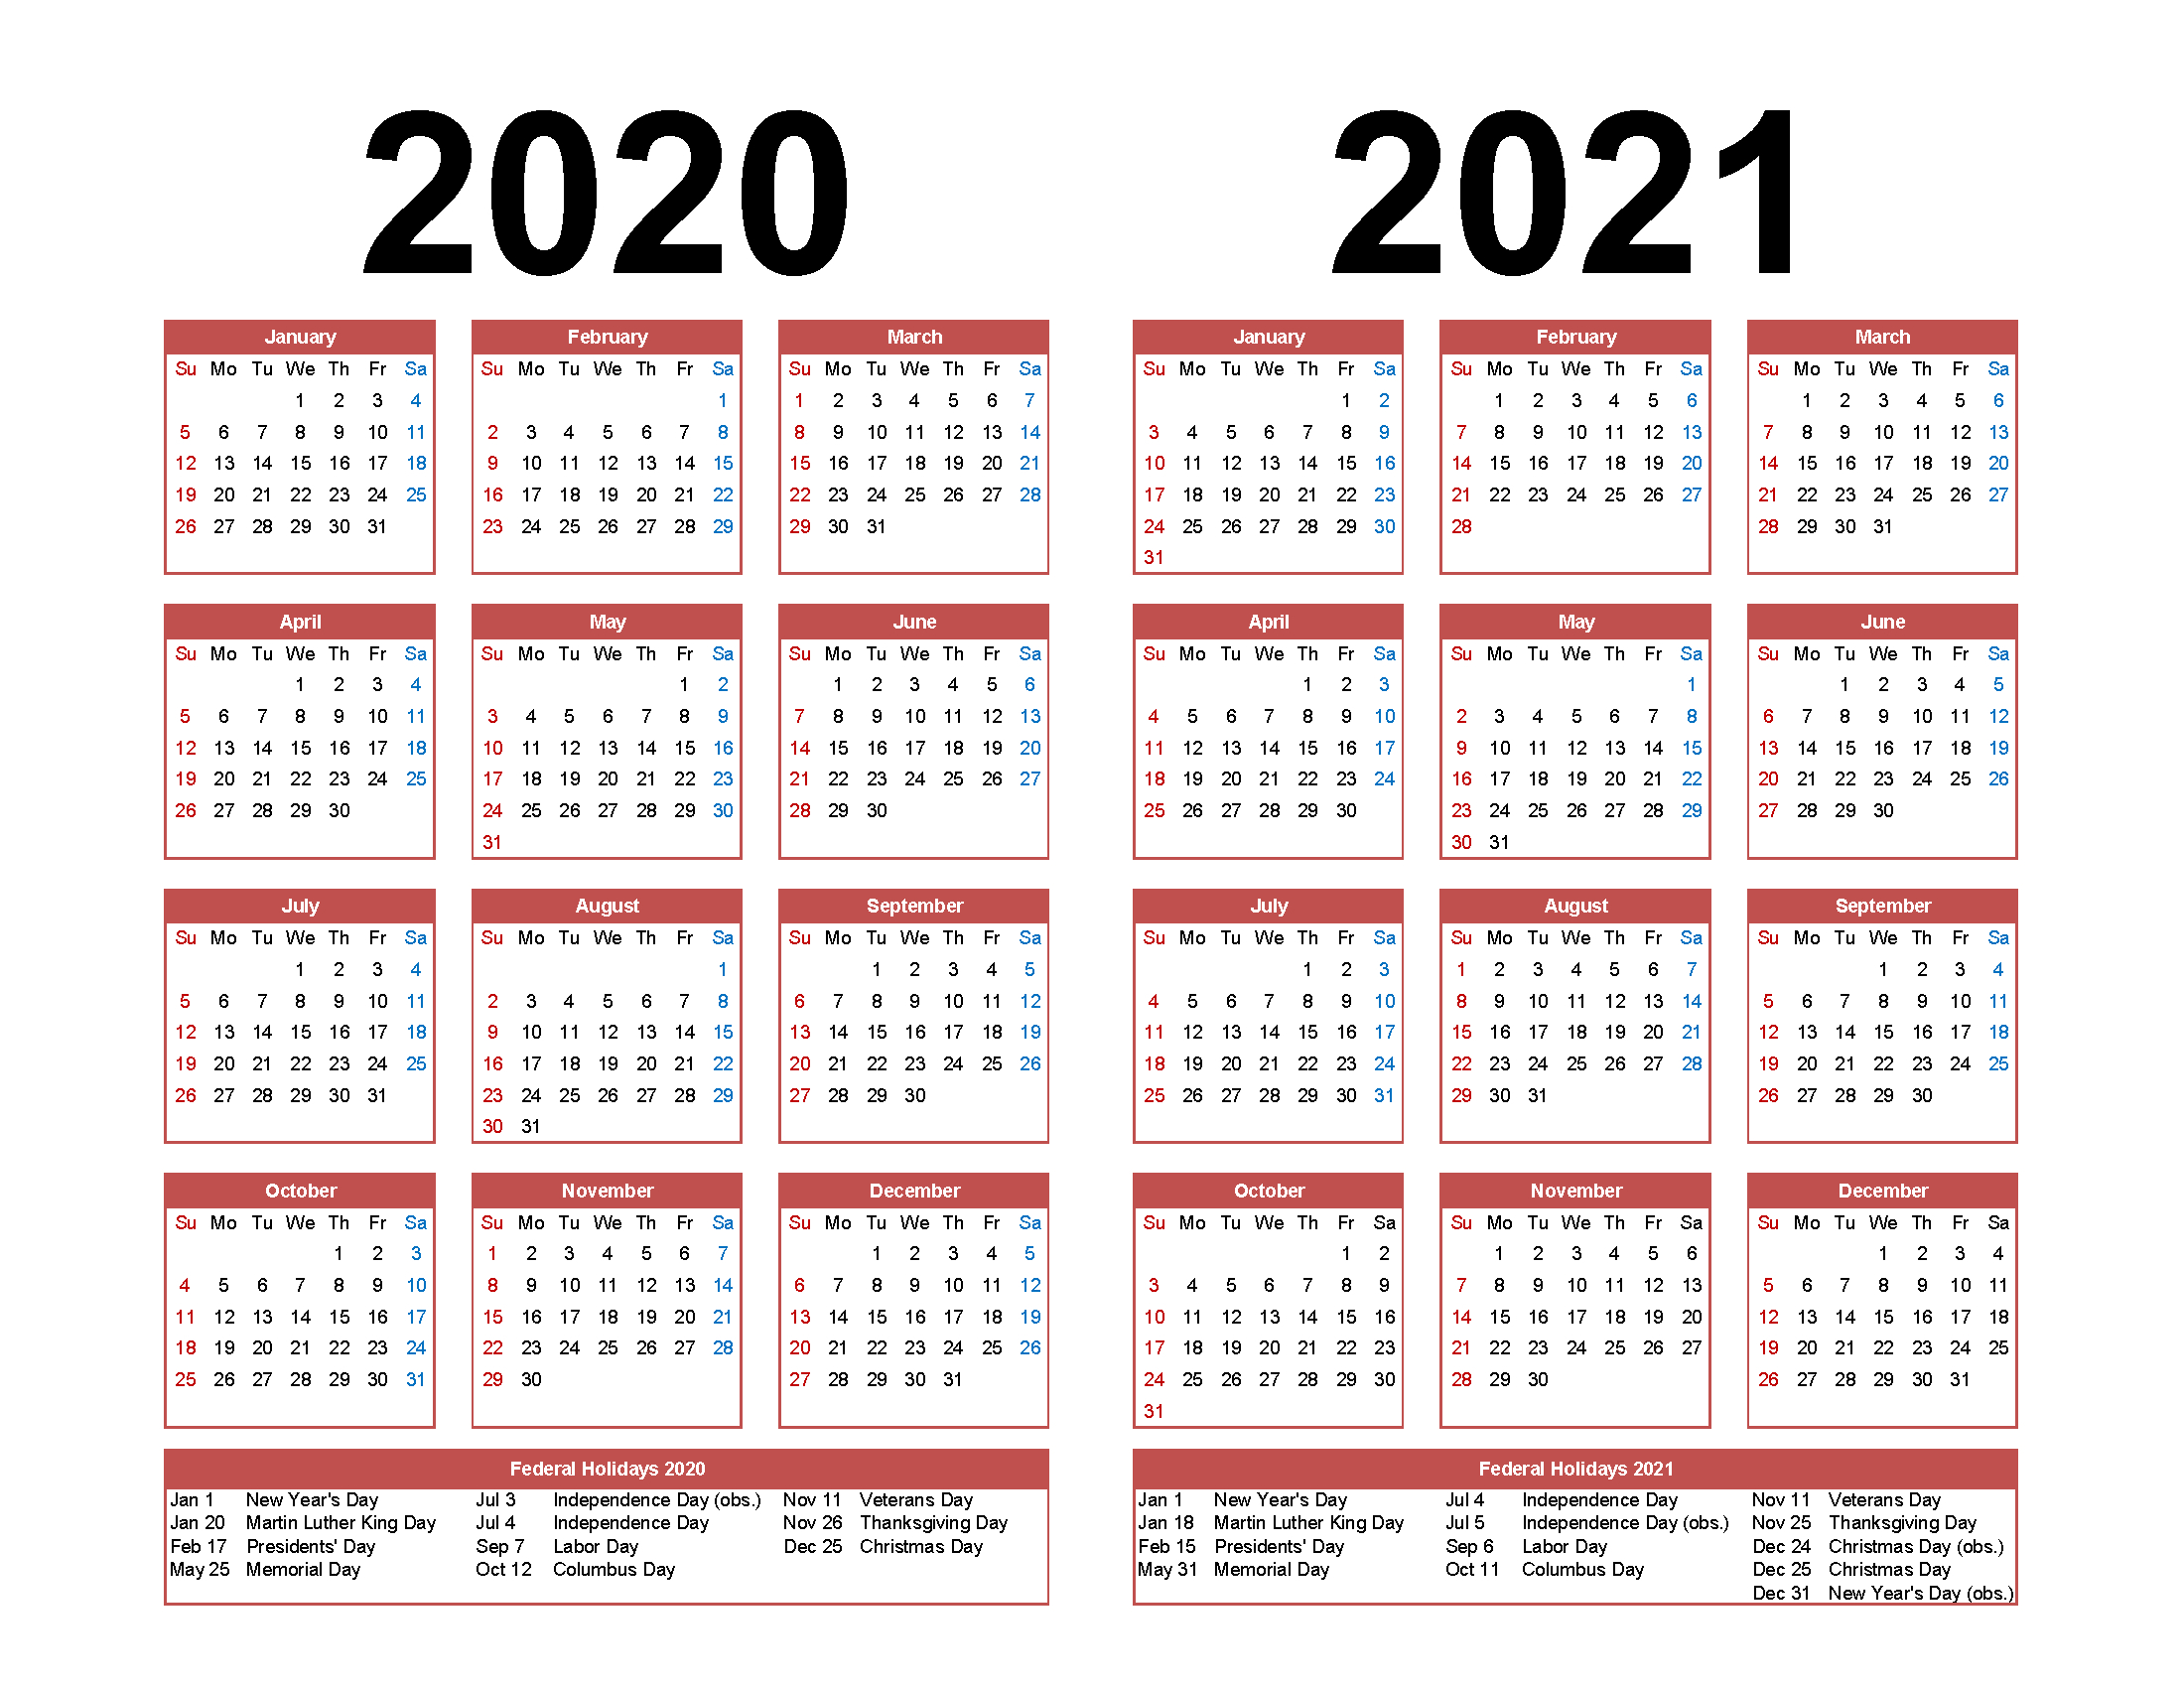 Printable Calendar 2020 2021 Two Year Per Page Free Pdf in 2 Year Calendar 2020 2021